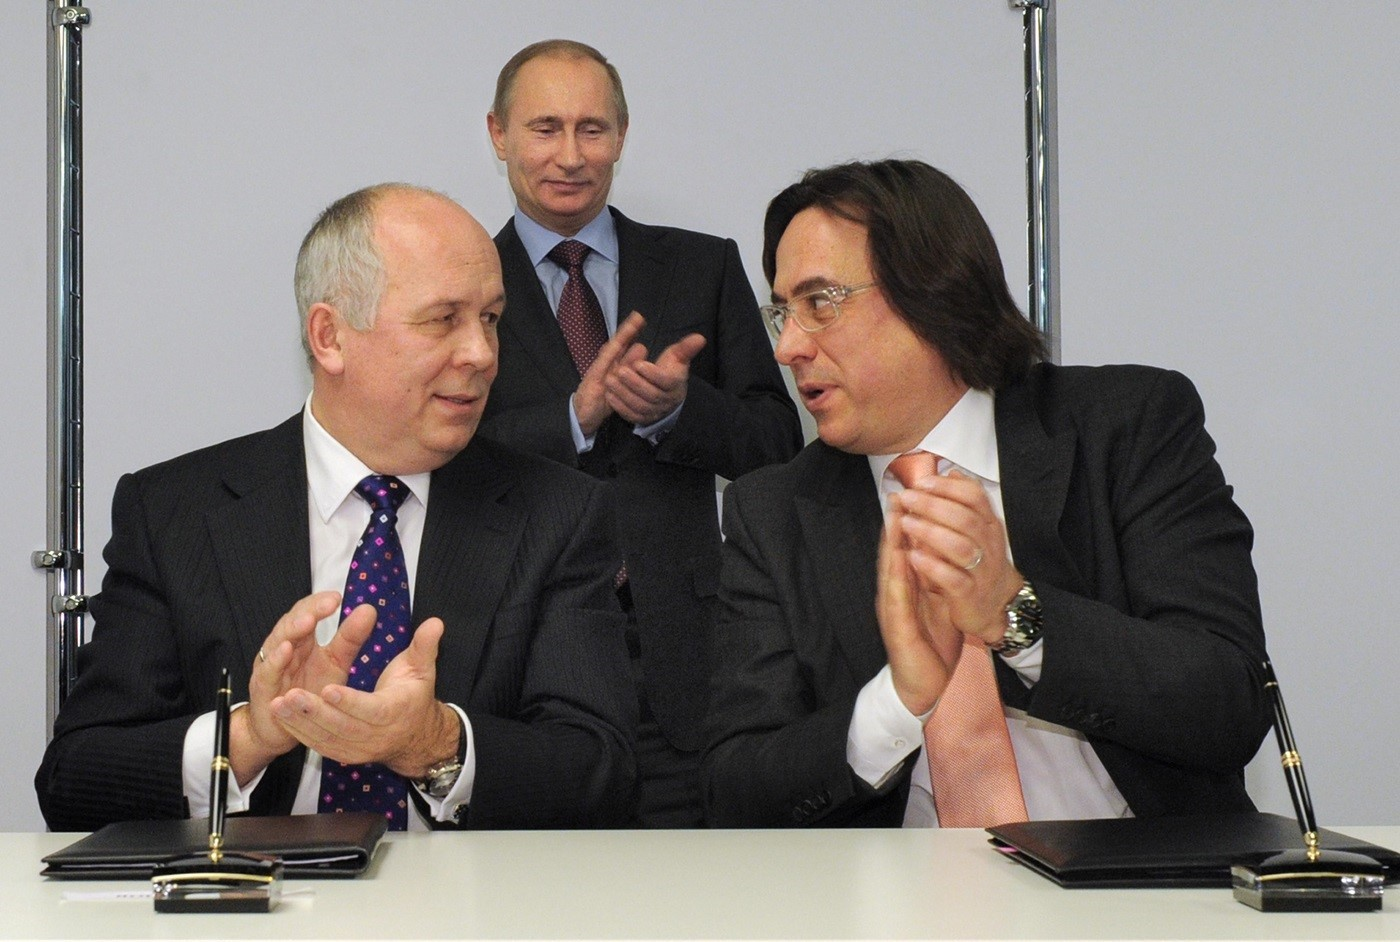 Citizen cocaine. What connects billionaire Sergei Adonyev, cocaine smuggling and Putin